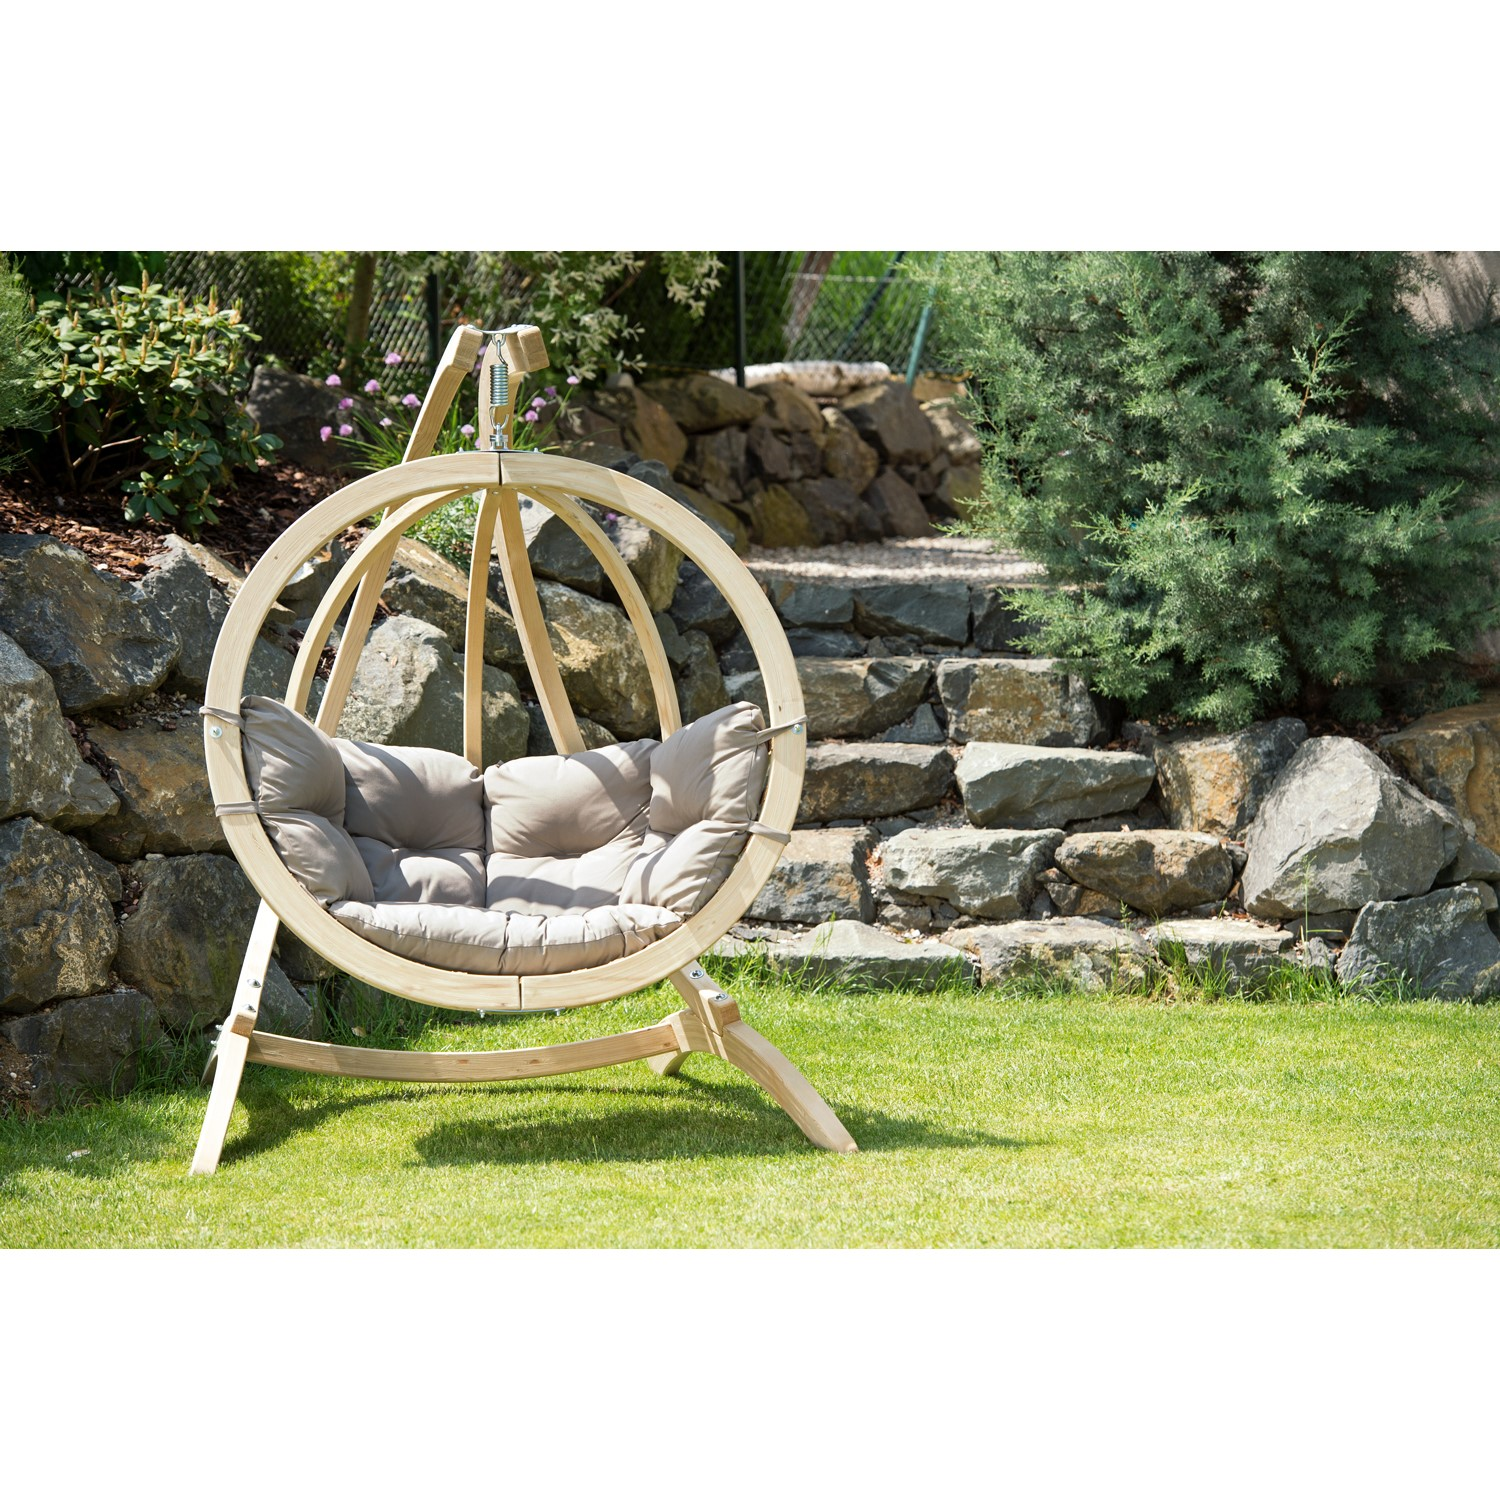 Globo Garden Swing Chair Stand, Outdoor Swing Chair With Stand Uk